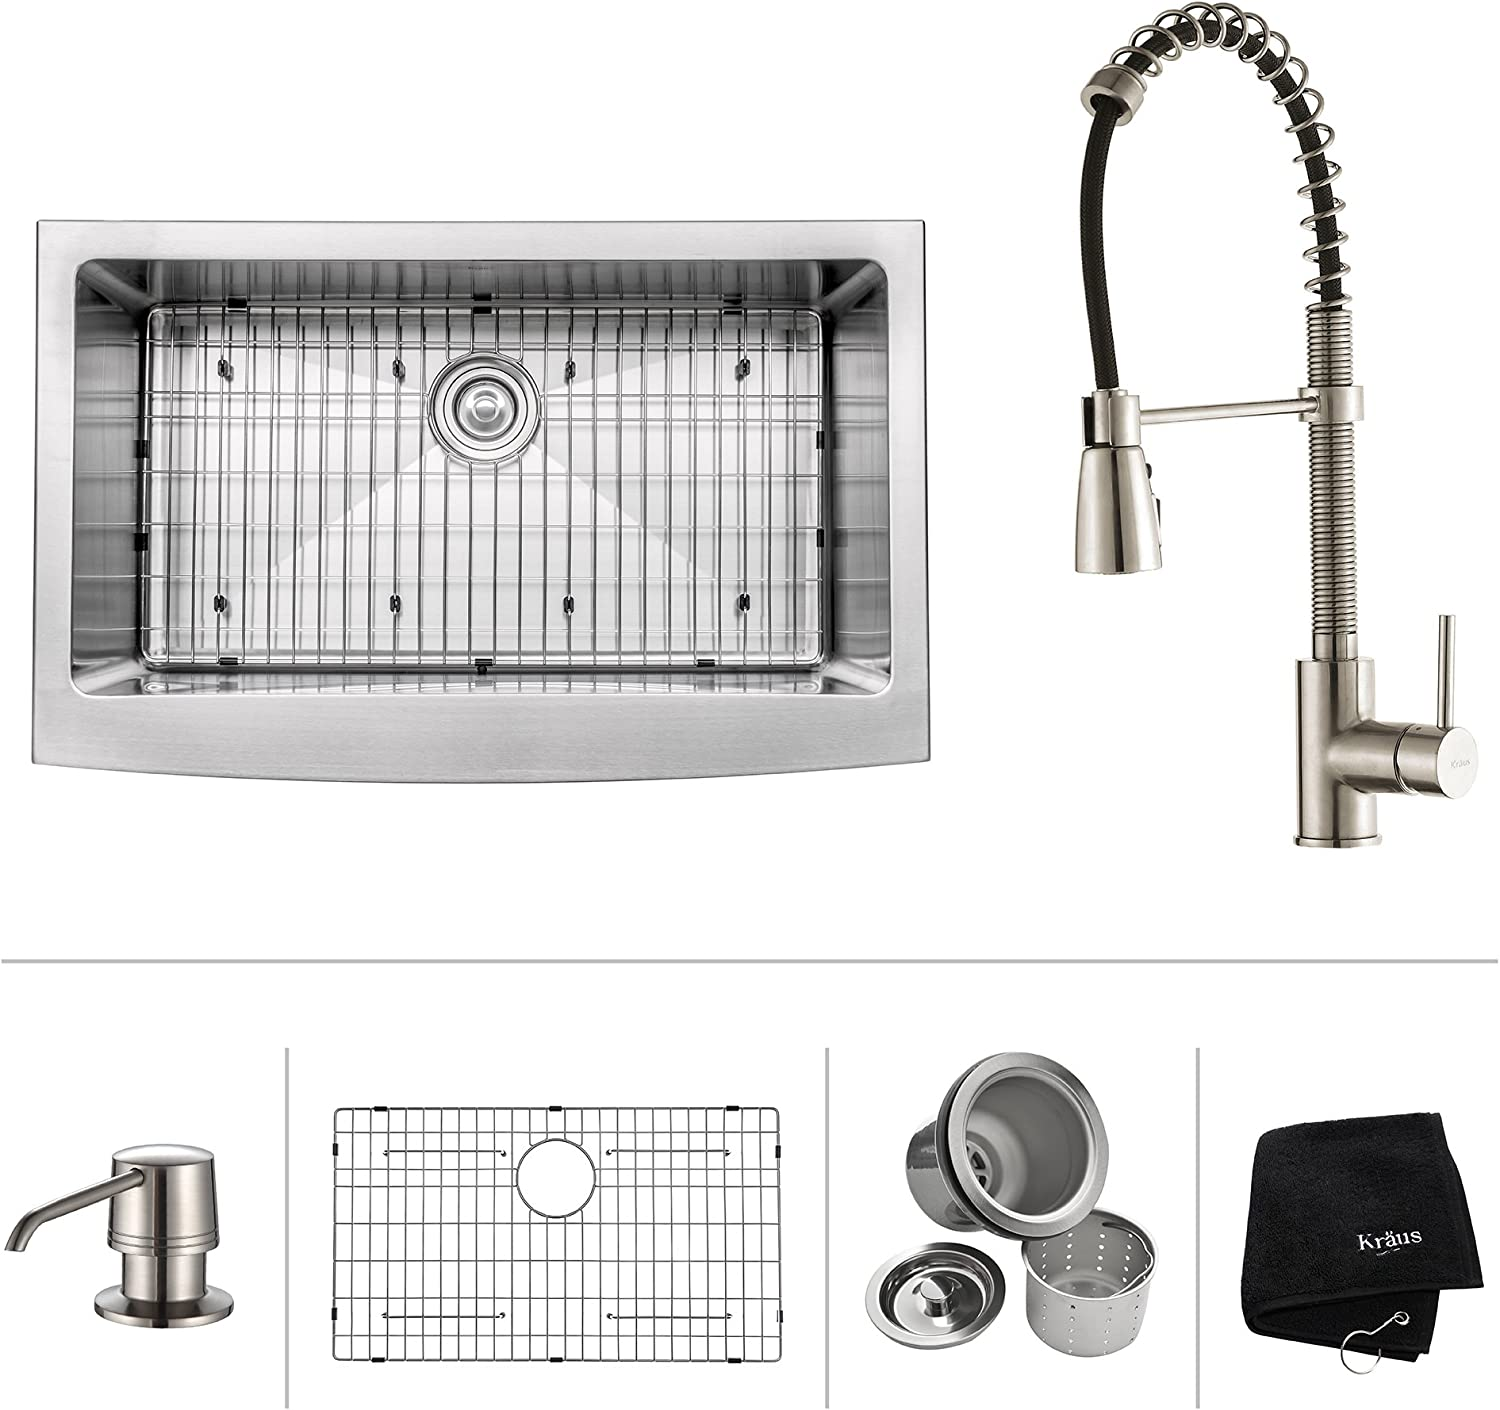 Kraus Khf200 33 Kpf1612 Ksd30ss 33 Farmhouse Single Bowl Stainless Steel Kitchen Sink With Stainless Steel Finish Kitchen Faucet And Soap Dispenser Amazon Com